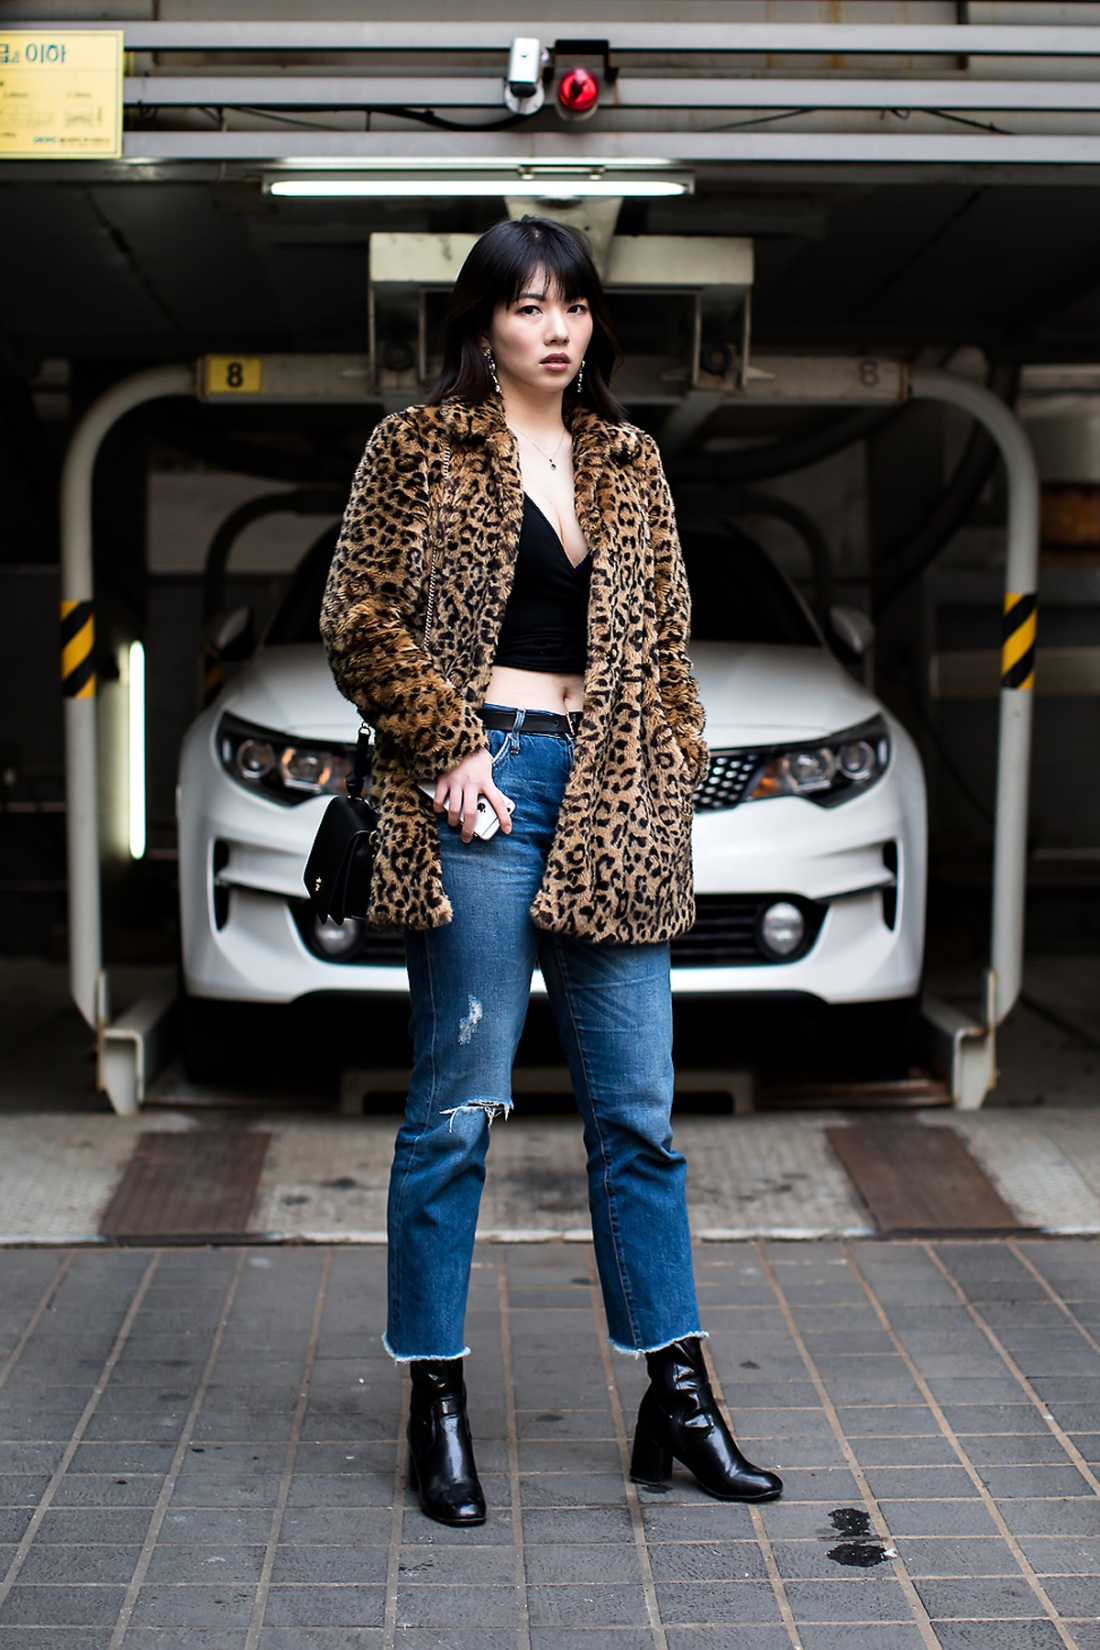 Lee Jihyun, Street Fashion 2017 in SEOUL.jpg